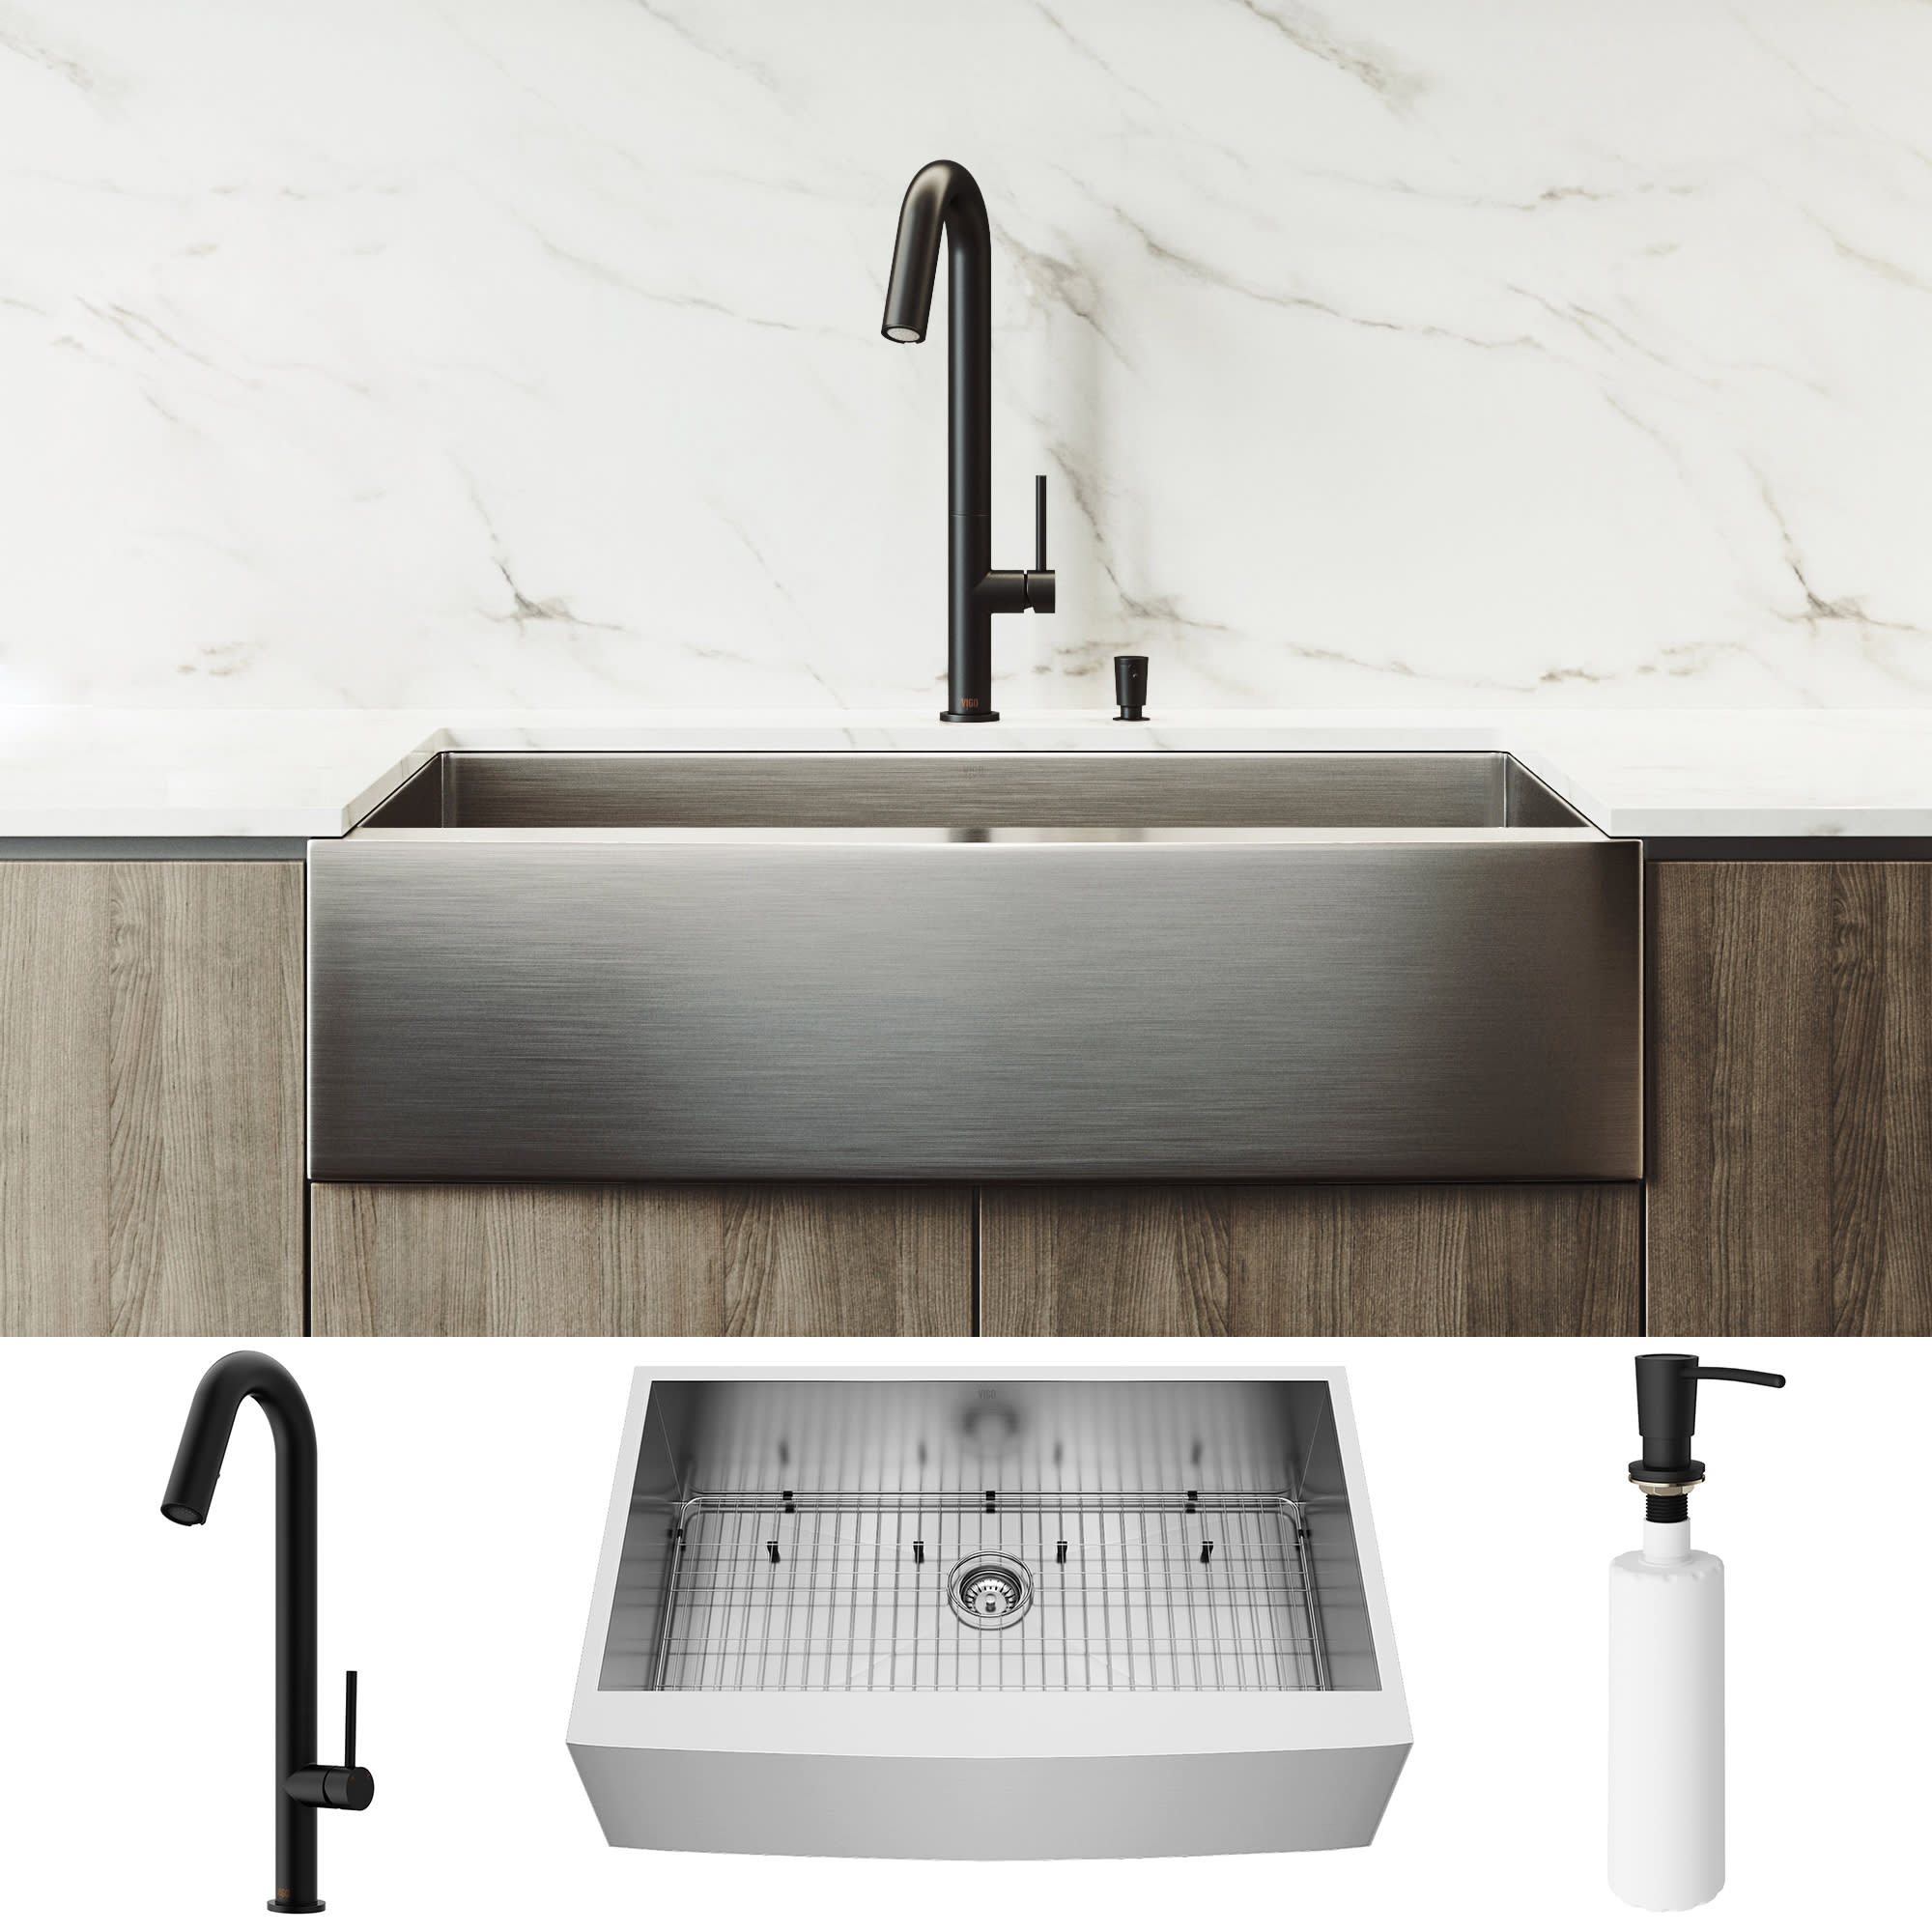 Vigo Vg15835 Matte Black Camden 36 Farmhouse Single Basin Stainless Steel Kitchen Sink With Oakhurst Matte Black Single Hole 1 8 Gpm Kitchen Faucet Soap Dispenser Basket Strainer And Cutting Board Included